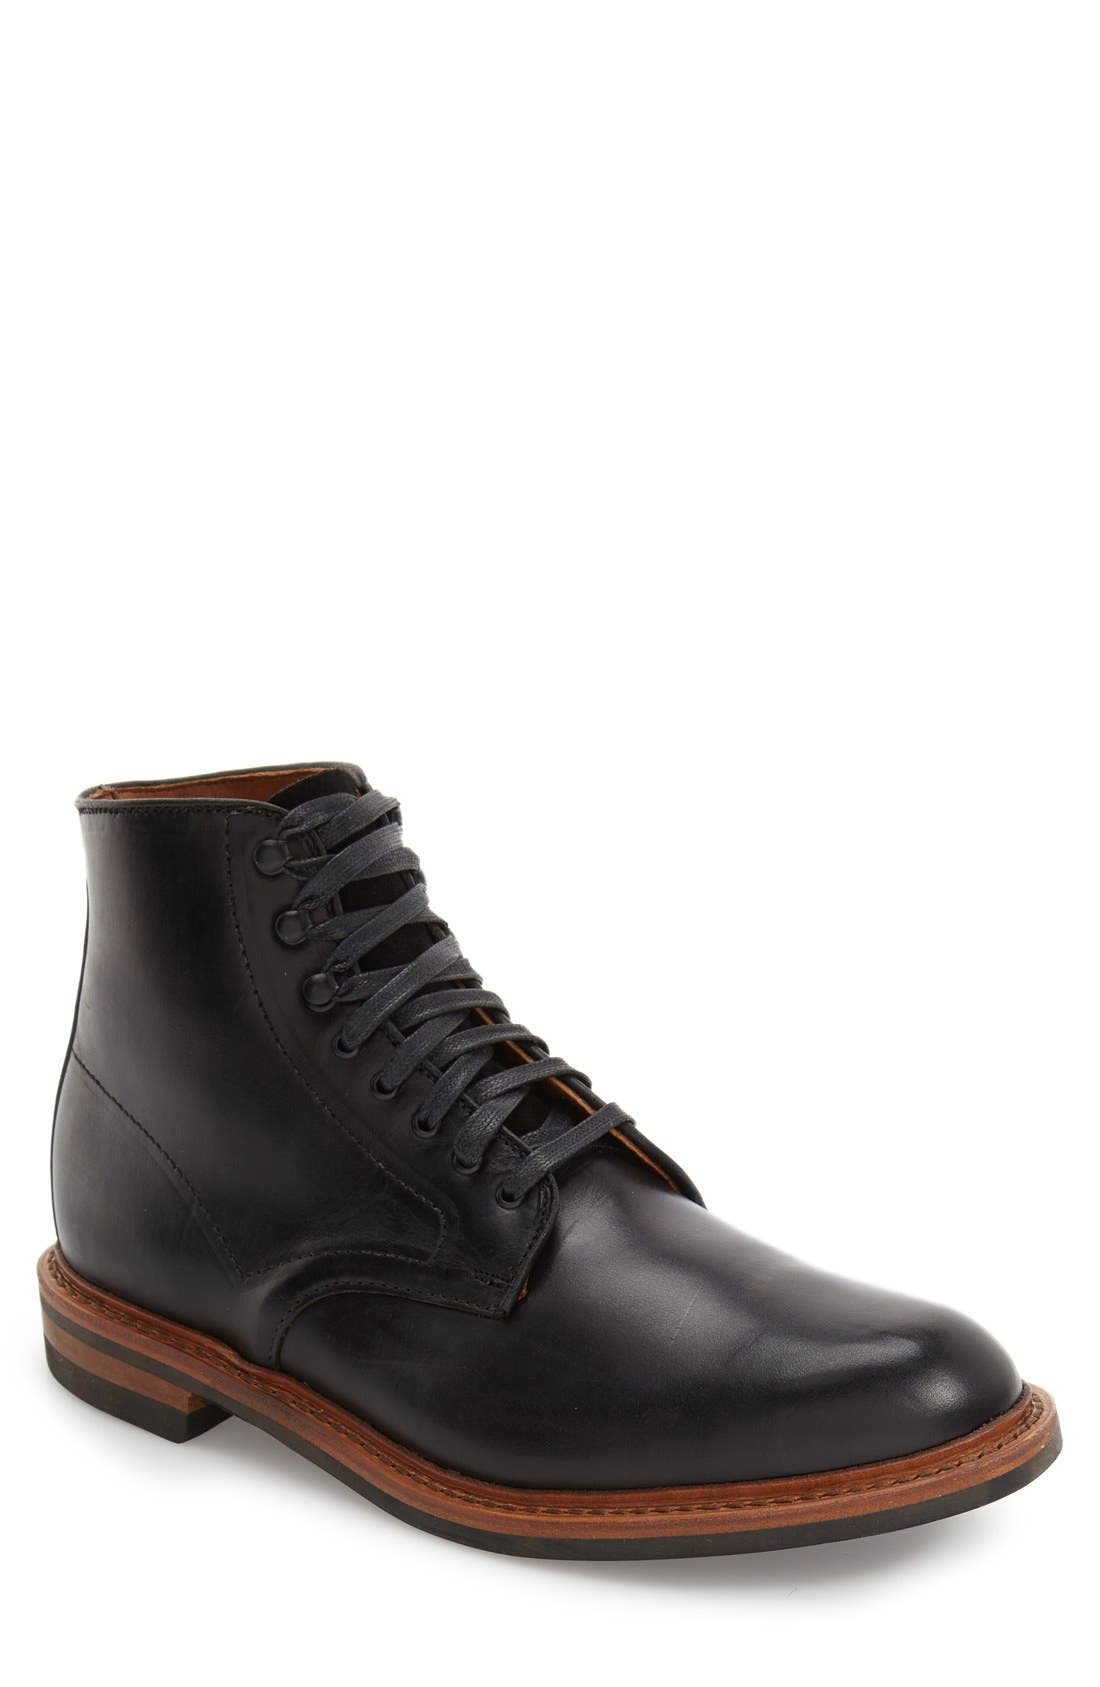 Main Image - Allen Edmonds 'Higgins Mill' Plain Toe Boot (Men)